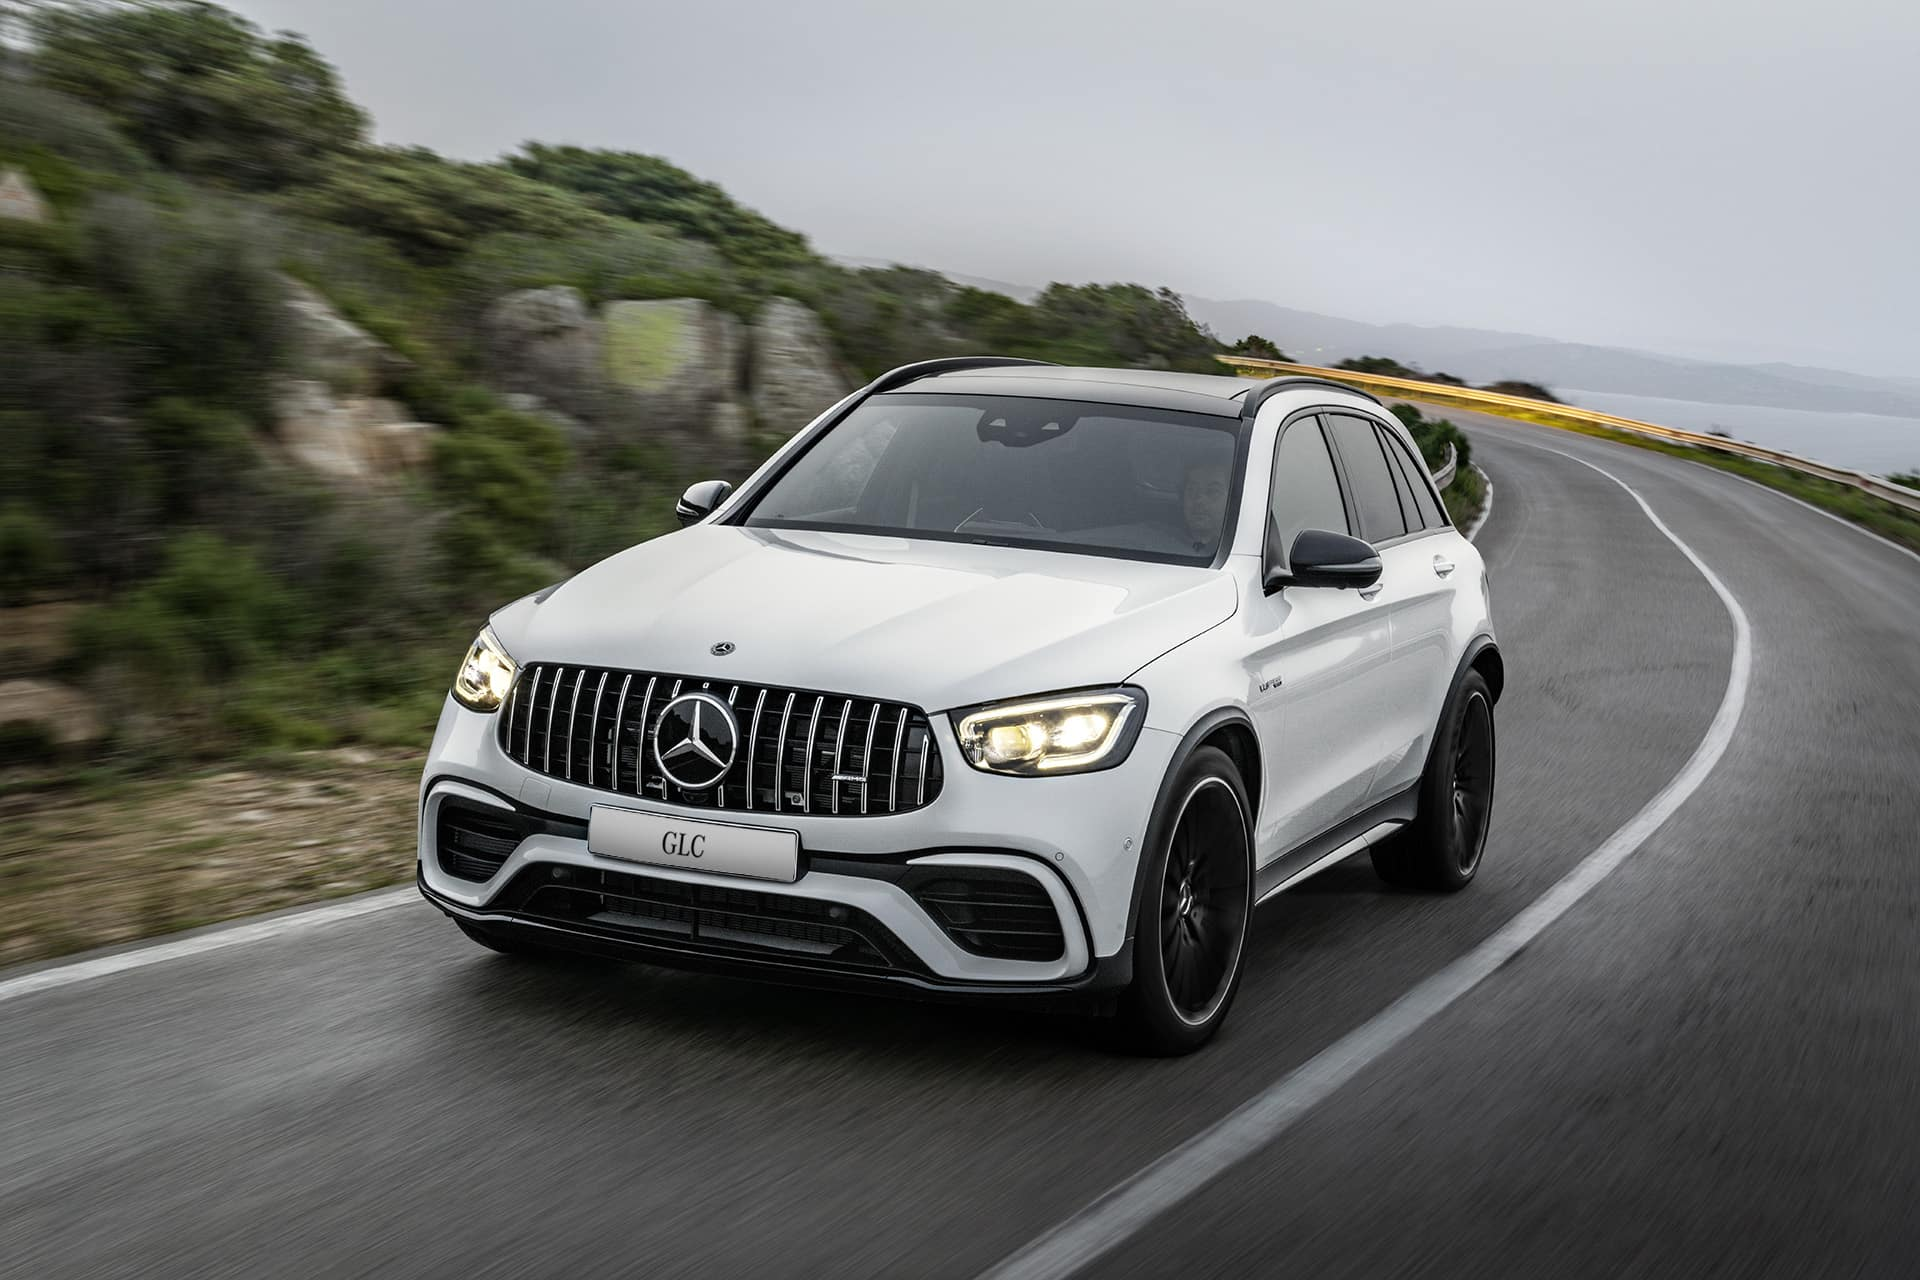 New Mercedes Suv >> The New Mercedes Amg Glc 63 S 4matic Suv And Coupe